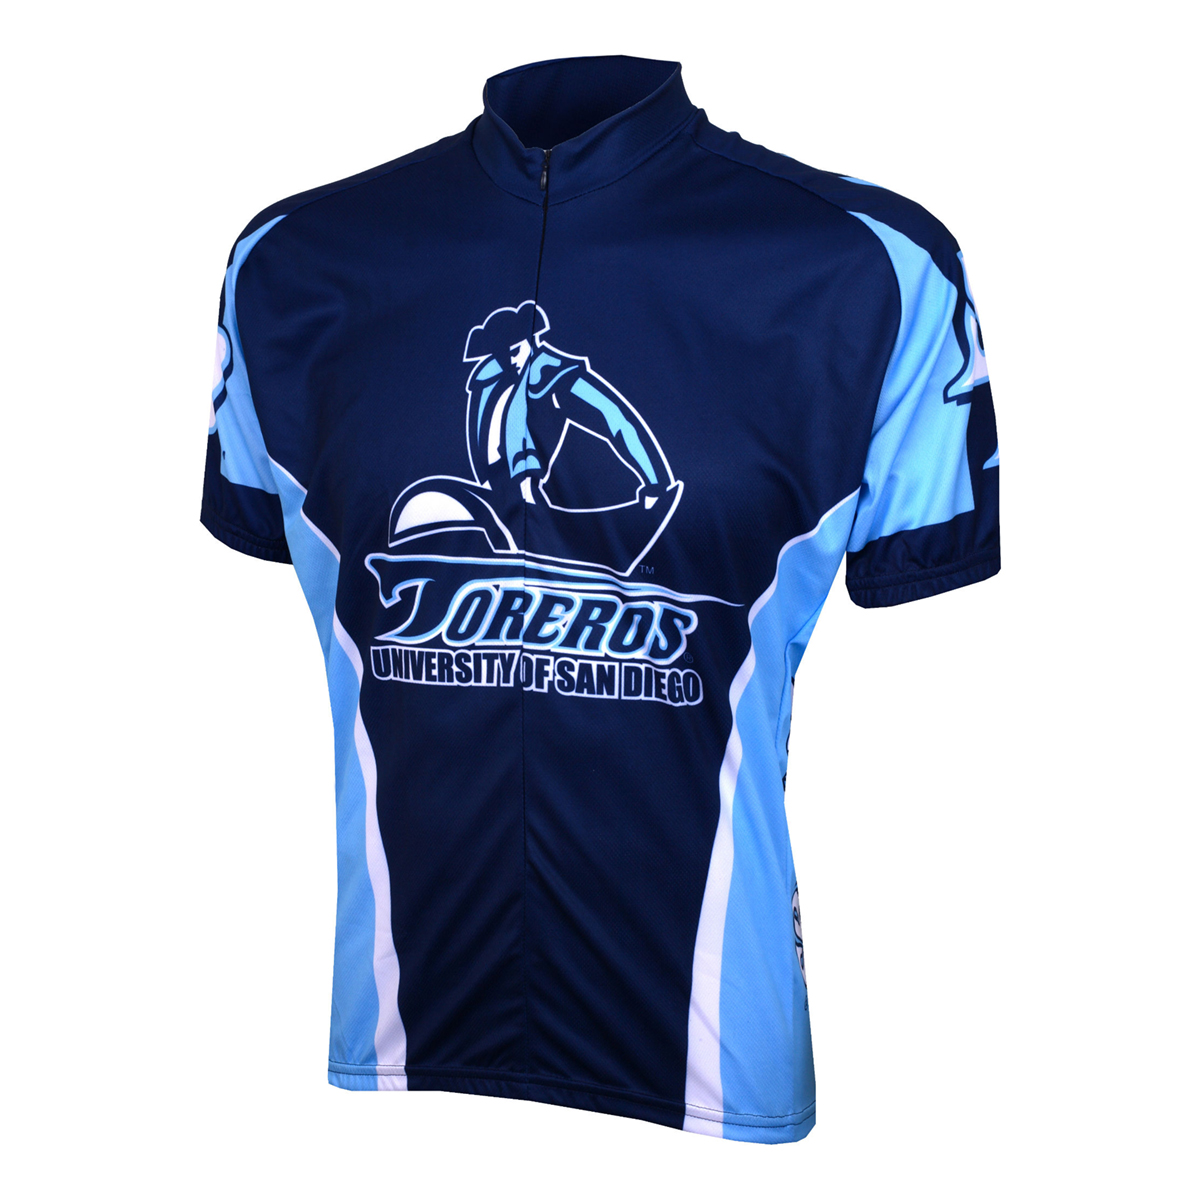 ... wholesale adrenaline promotions university of san diego toreros cycling  jersey walmart bd75e 972ce ... 5c1114f2c